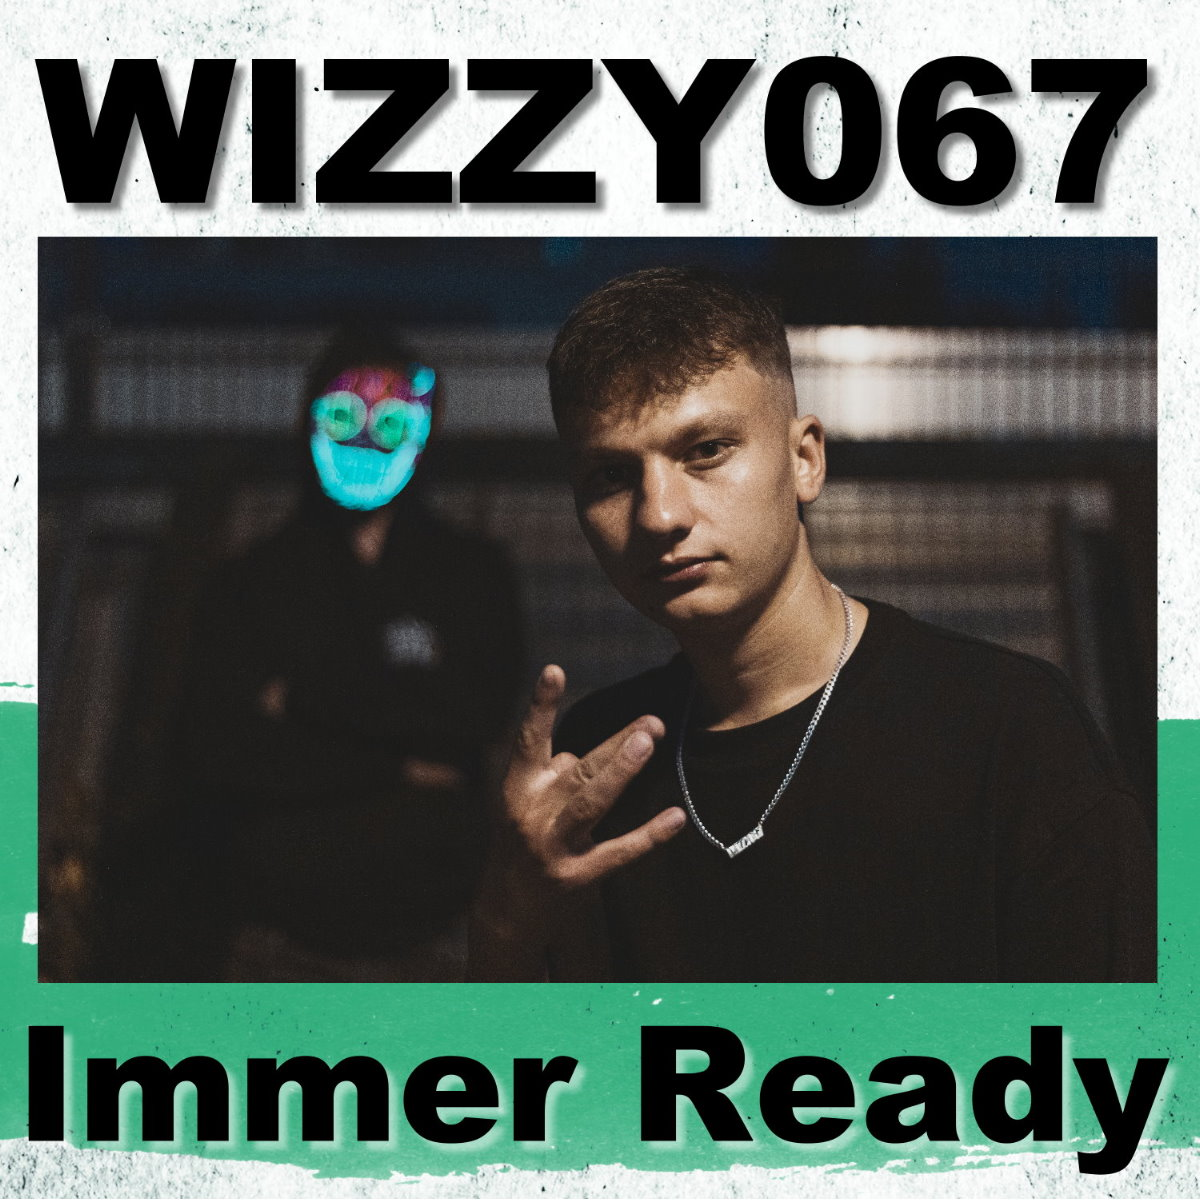 Upcoming: WIZZY067 - Immer Ready